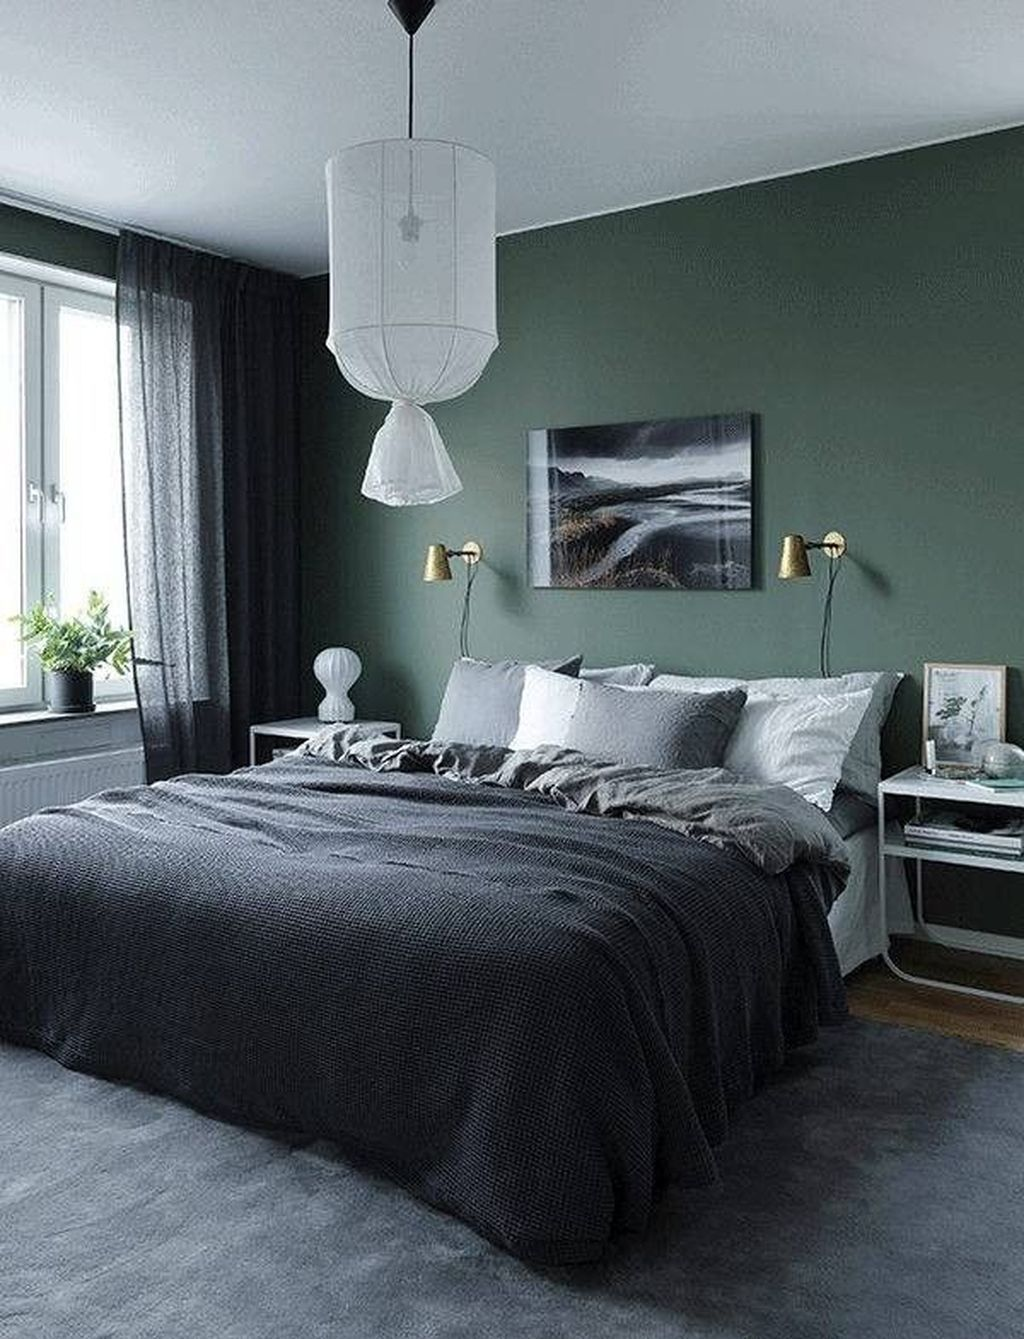 Cool 20 Modern Bedroom Decorating Ideas For Men Modern Bedroom Ideas For Men Ideas For Mens Bedro Green Bedroom Walls Home Decor Bedroom Bedroom Interior